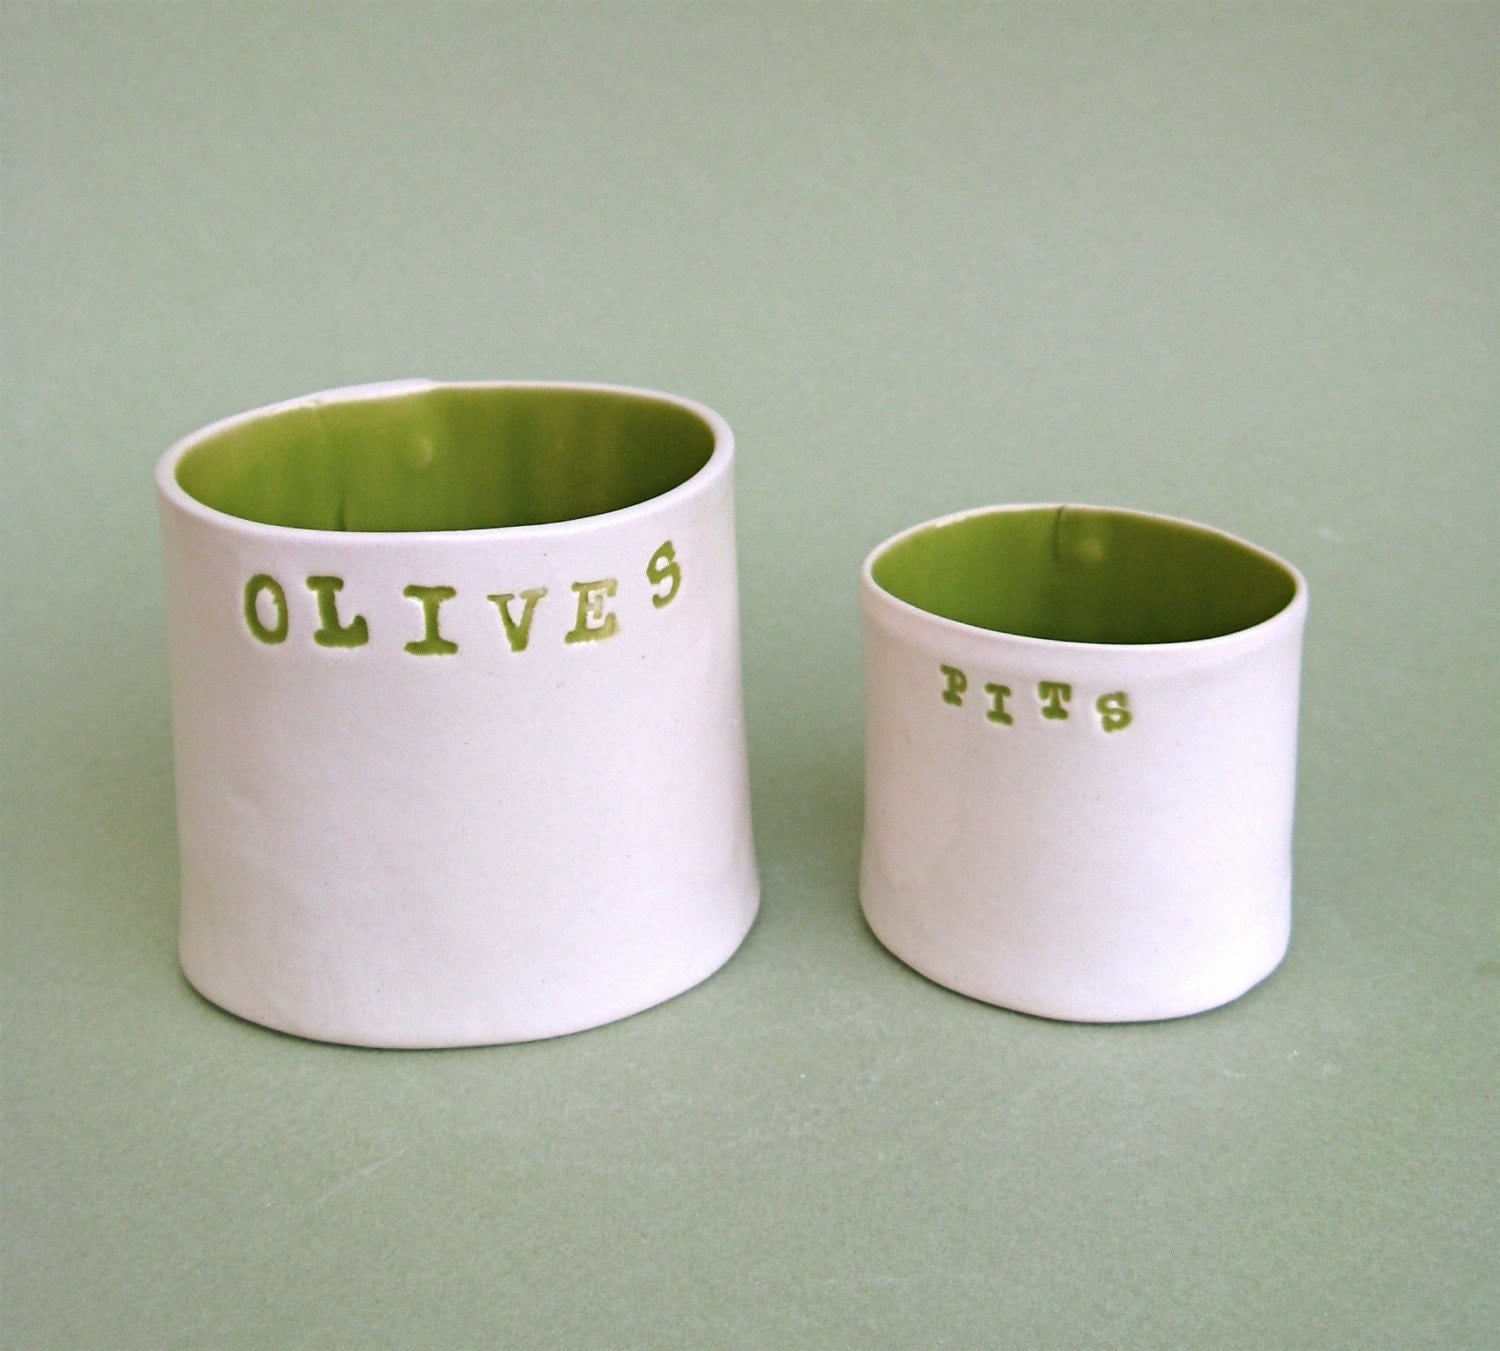 olives and pits  ....  hand built porcelain containers ...  vessels